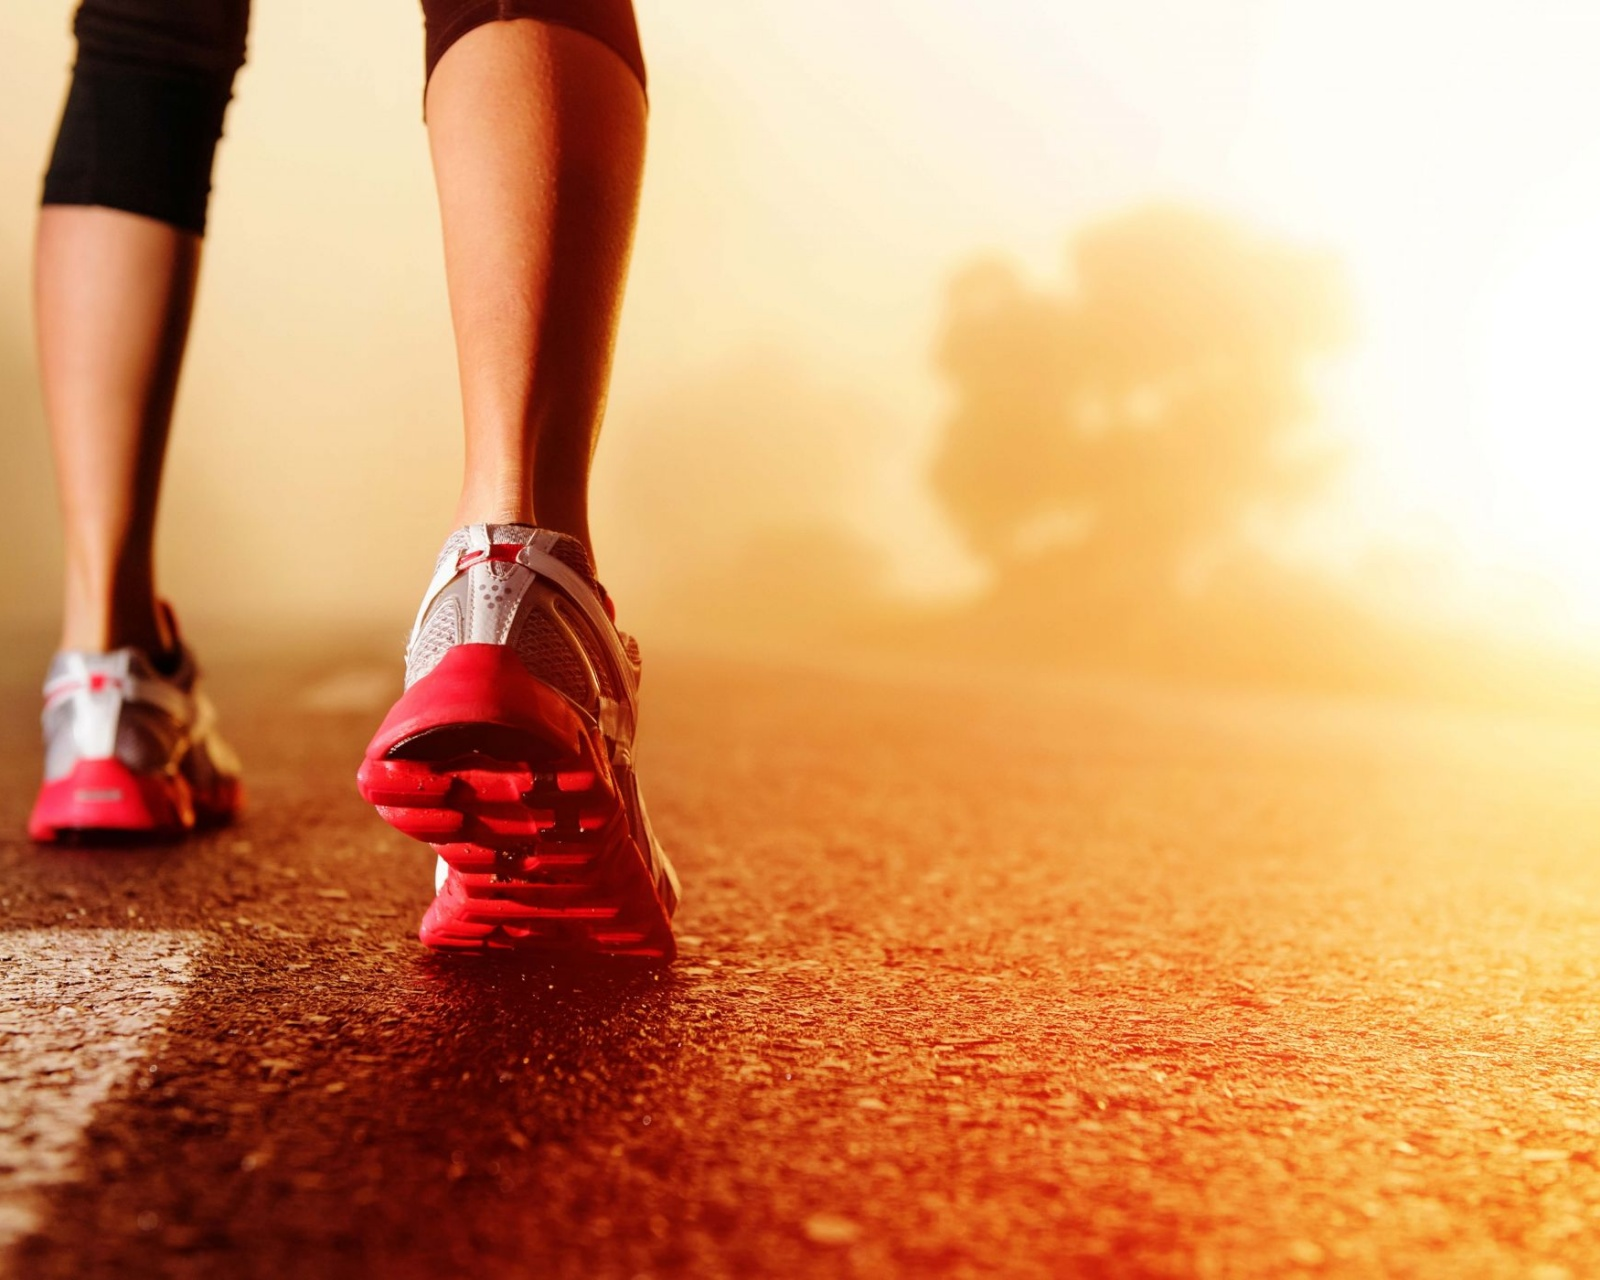 Sport Wallpaper Shoes Outlet: Sports Running Shoes Wallpaper